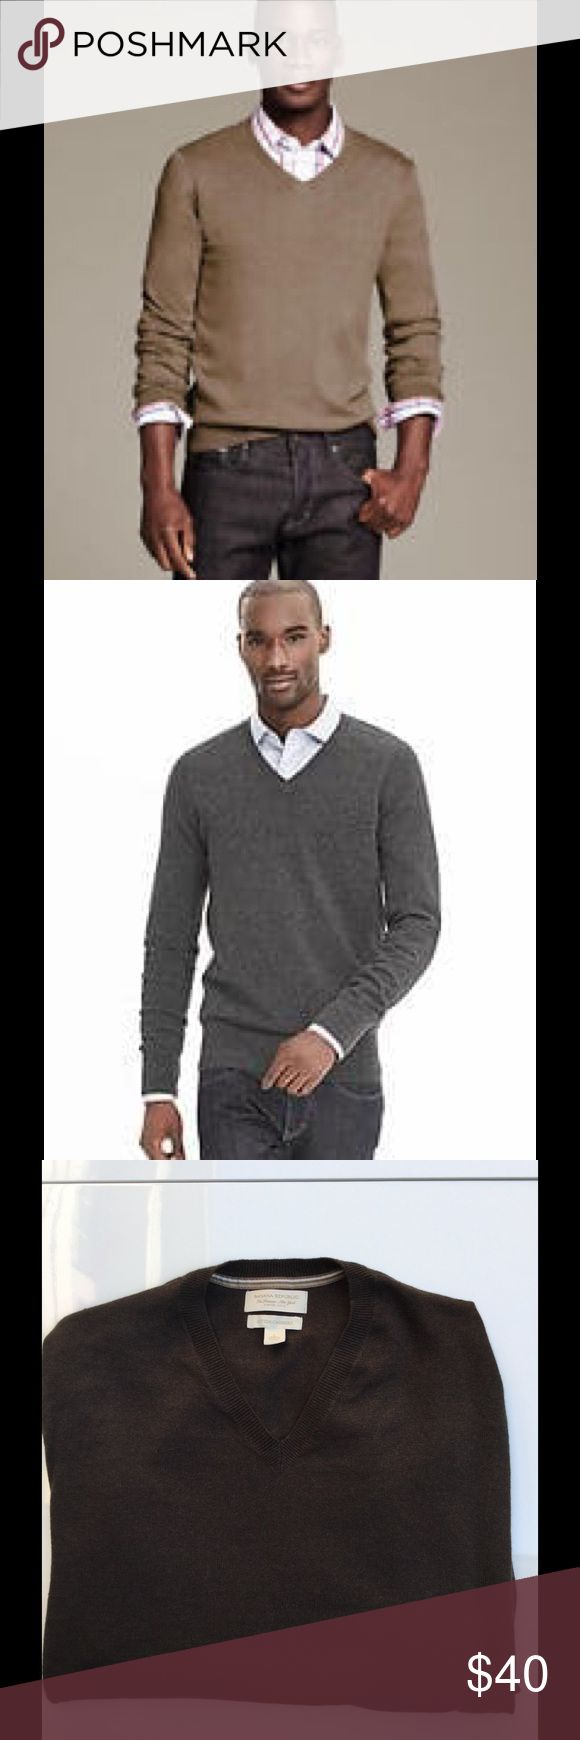 Banana Republic Men's V Neck Sweater Banana Republic Men's V Neck Cotton/Cashmere Sweater. Size is large, in a chocolate brown color. Sweater is very soft and in excellent condition. Looks great with khakis on a date. Pet free smoke free home. Next day shipping. Banana Republic Sweaters V-Neck